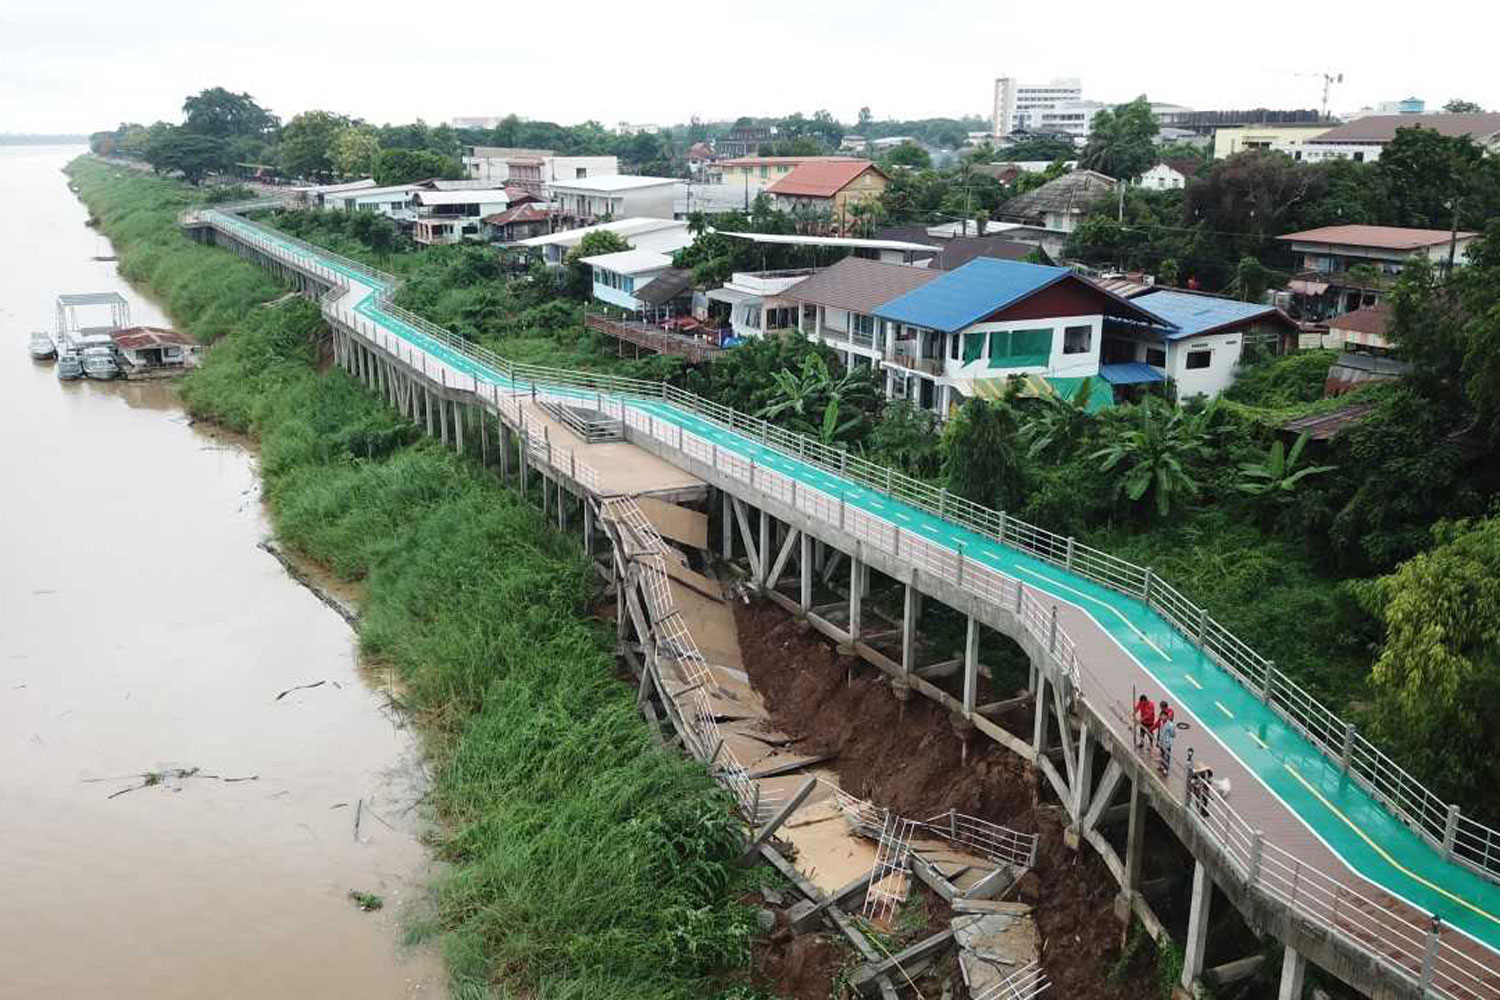 The viewpoint section of a new cycling path alongside the Mekong river collapsed, in Muang district of Nakhon Phanom province, on Tuesday. State engineers deemed the cycling path unsafe and have closed it. (Photo by Pattanapong Sripiachai)